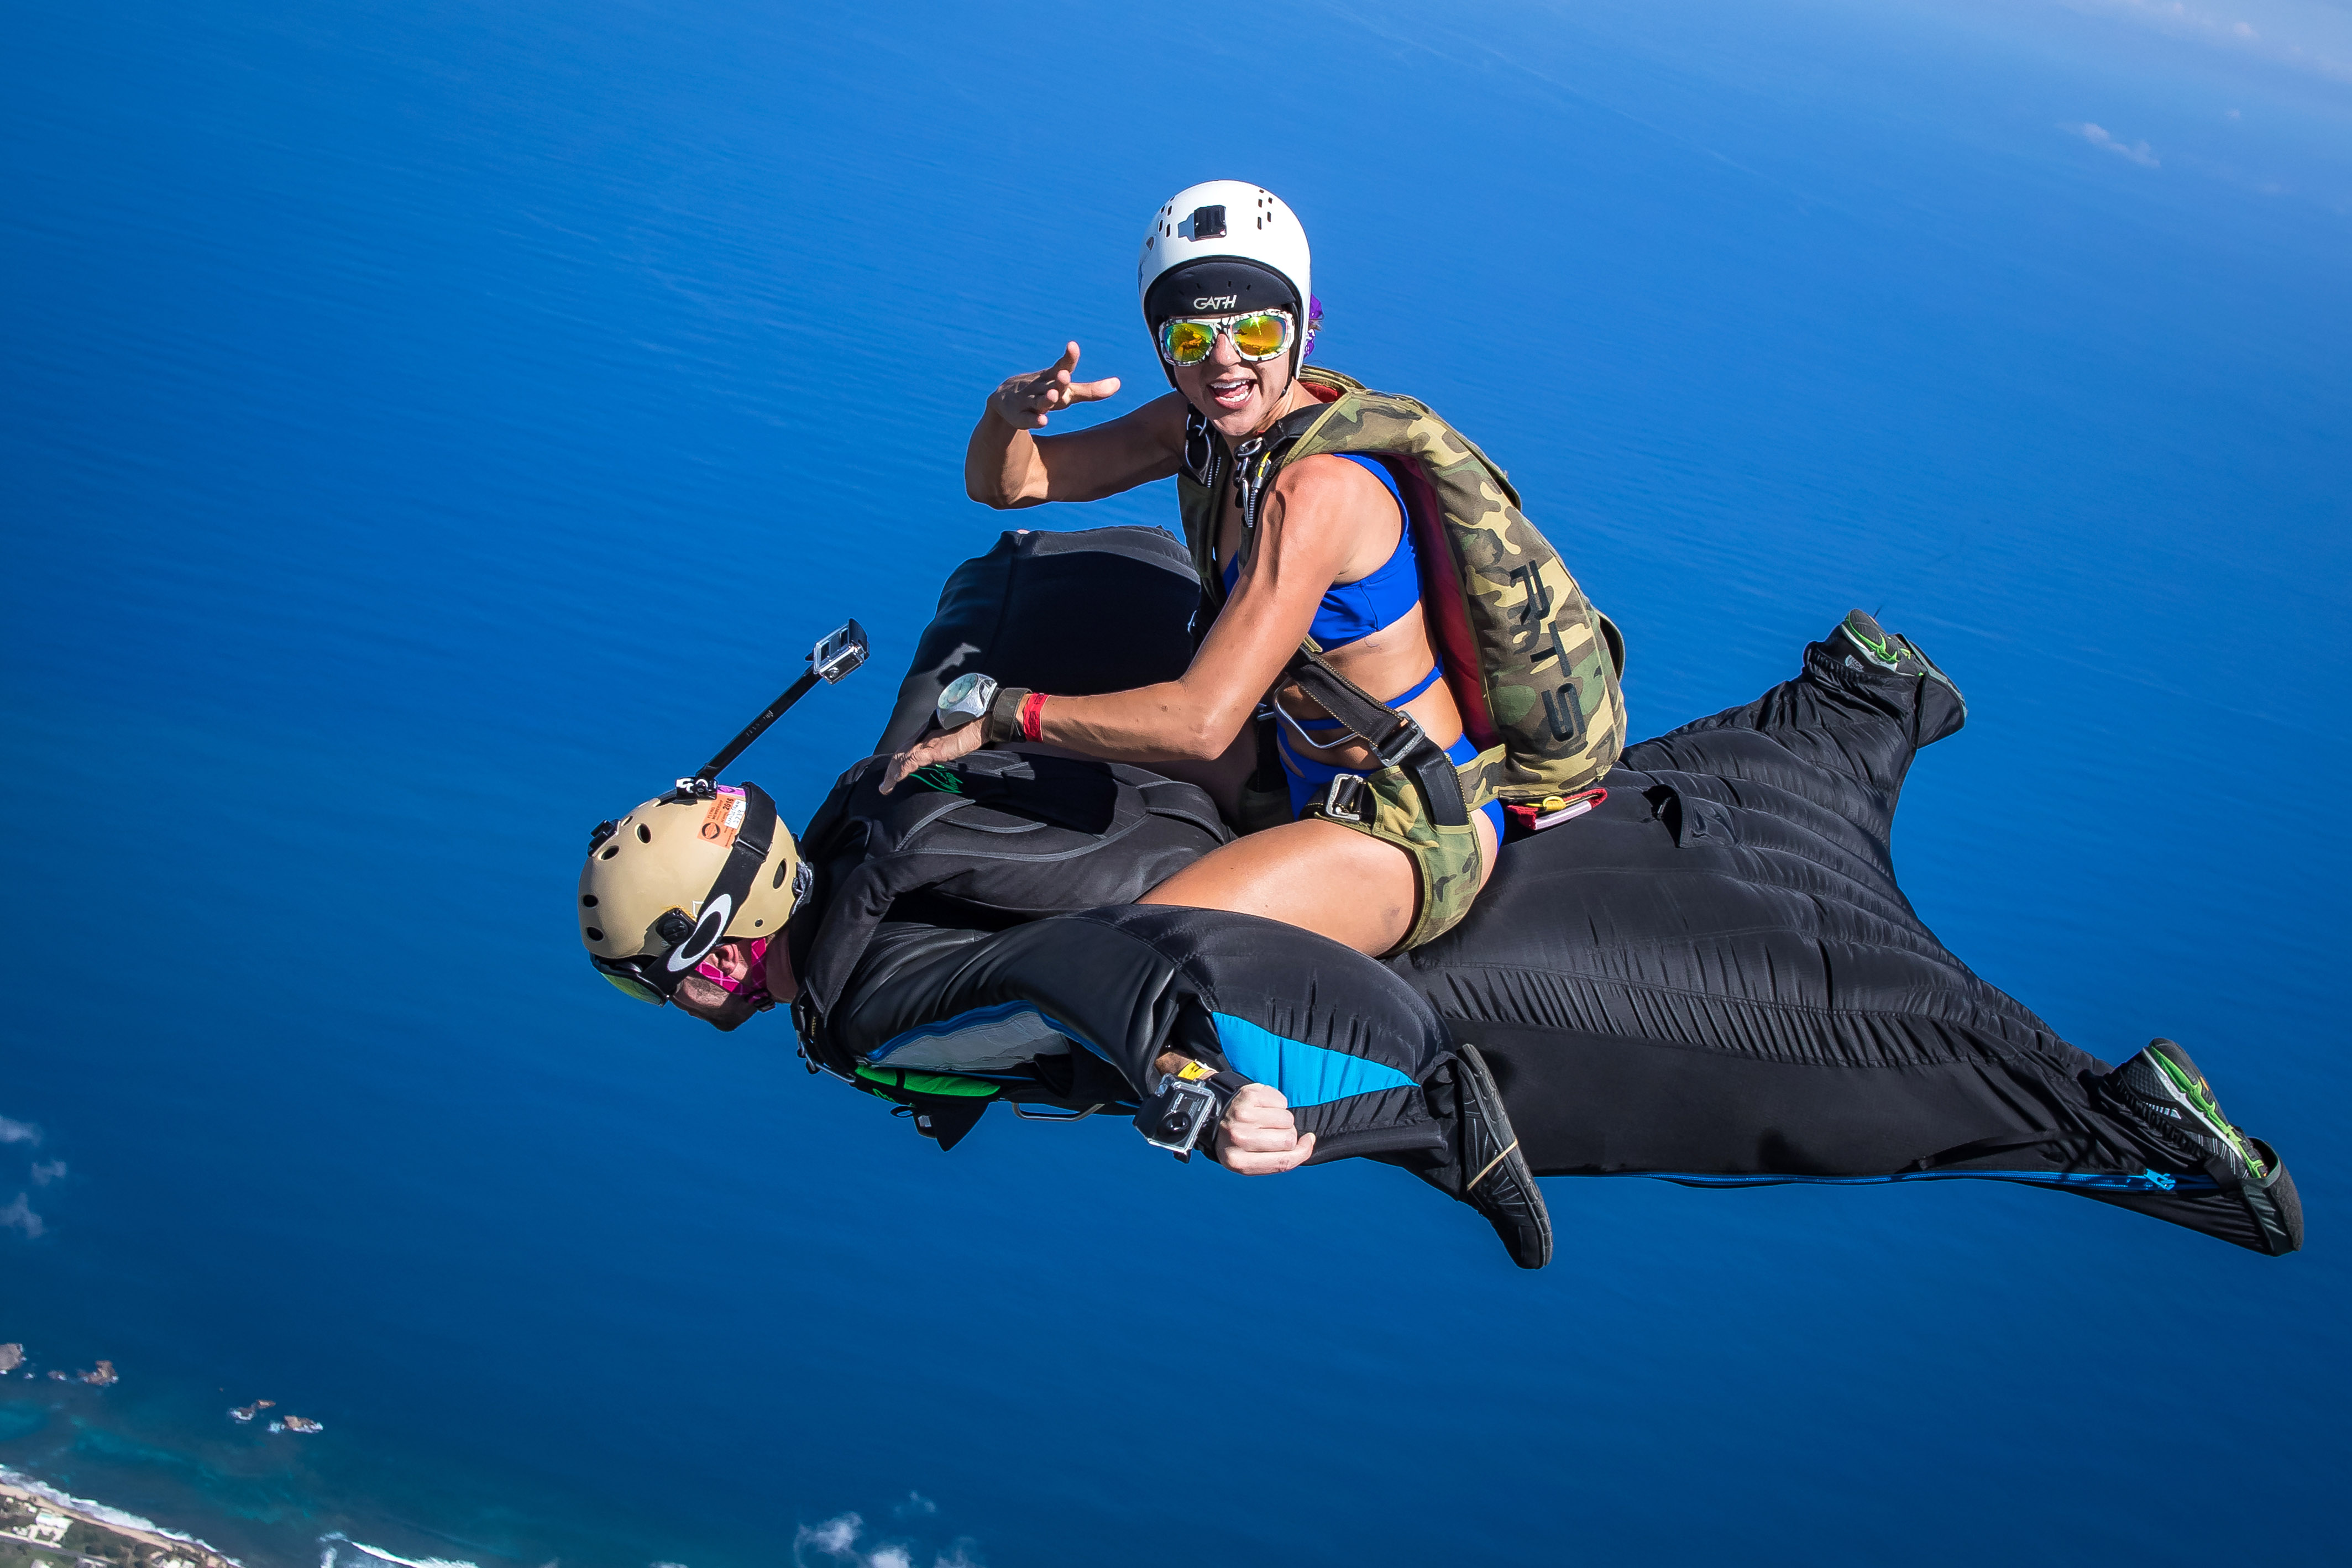 Fearless Skydiver Pulls Off Stunt As She Recreates Rodeo